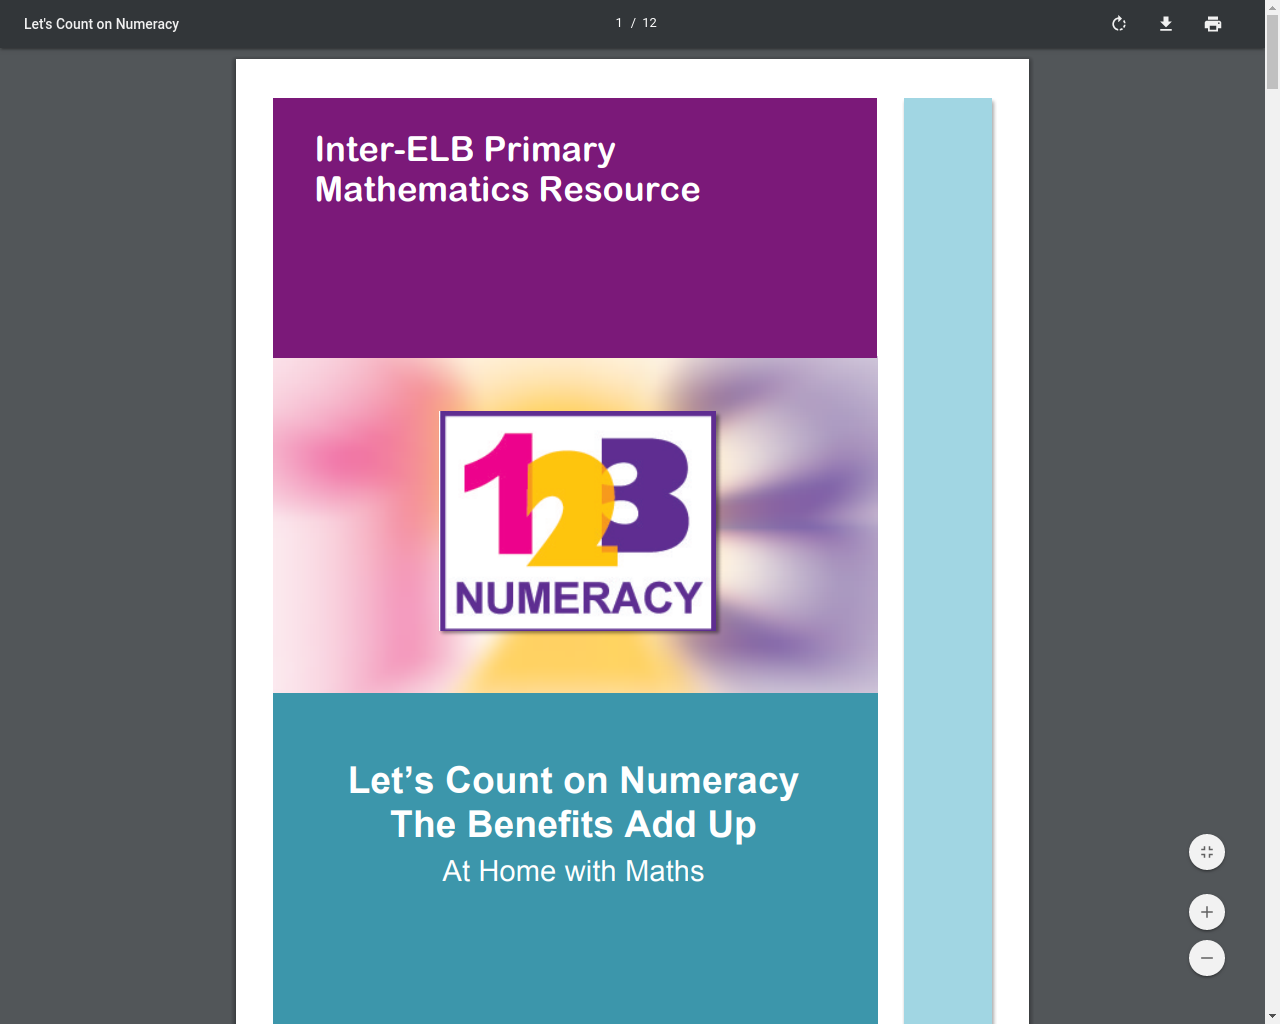 Let's Count on Numeracy